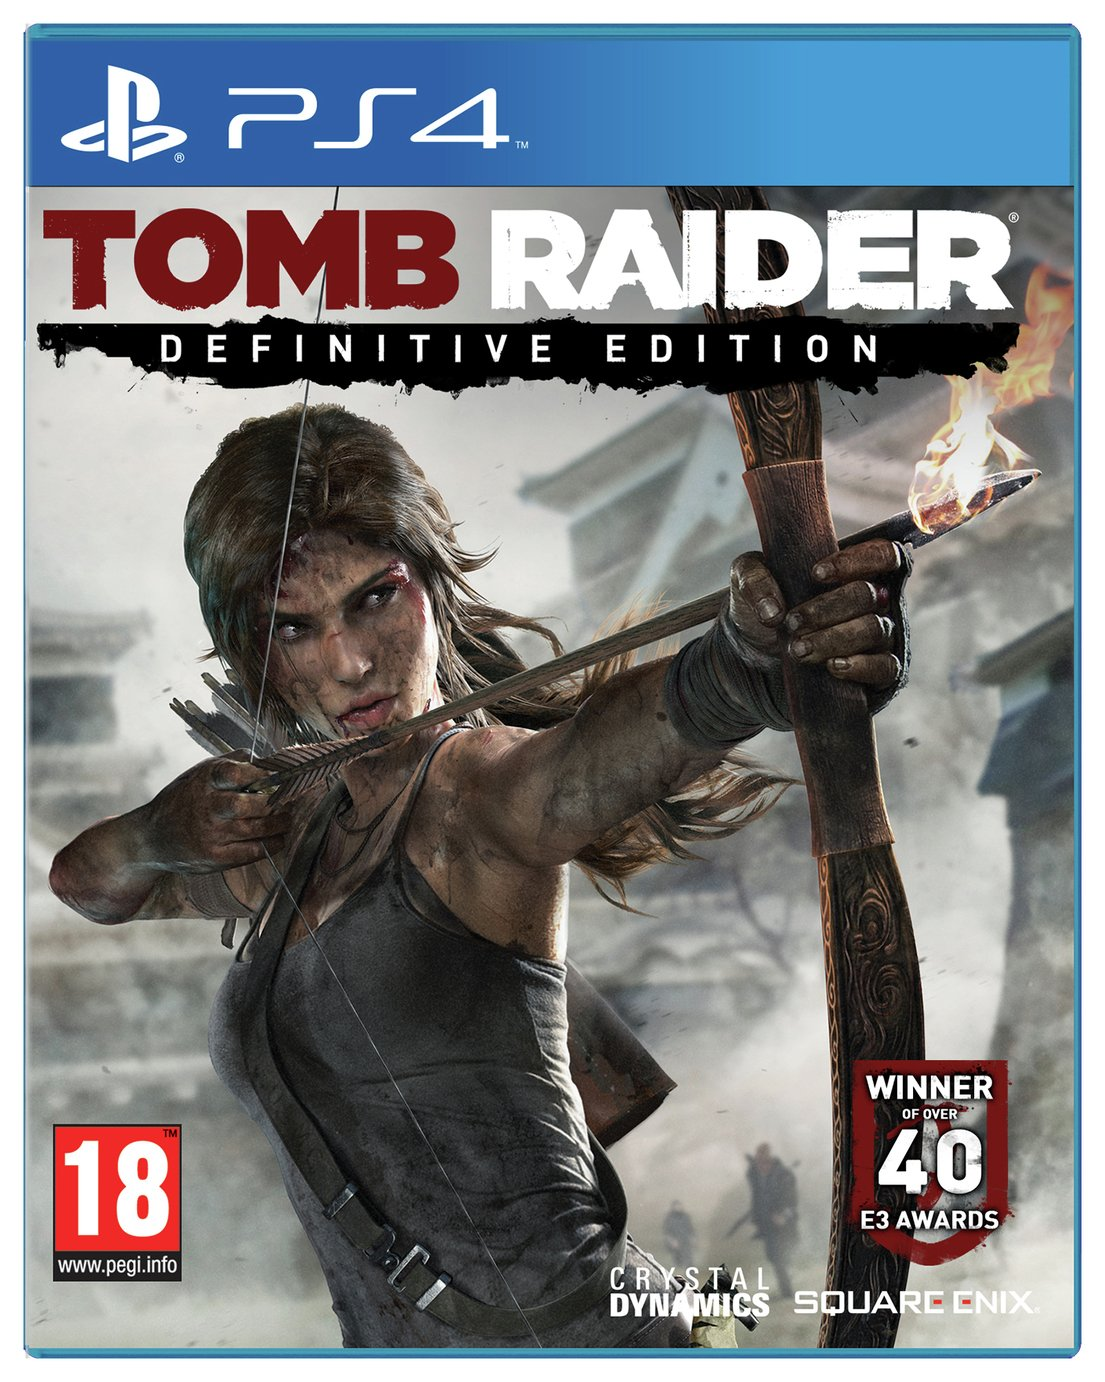 Tomb Raider: Definitive Edition PS4 Game from Tomb Raider